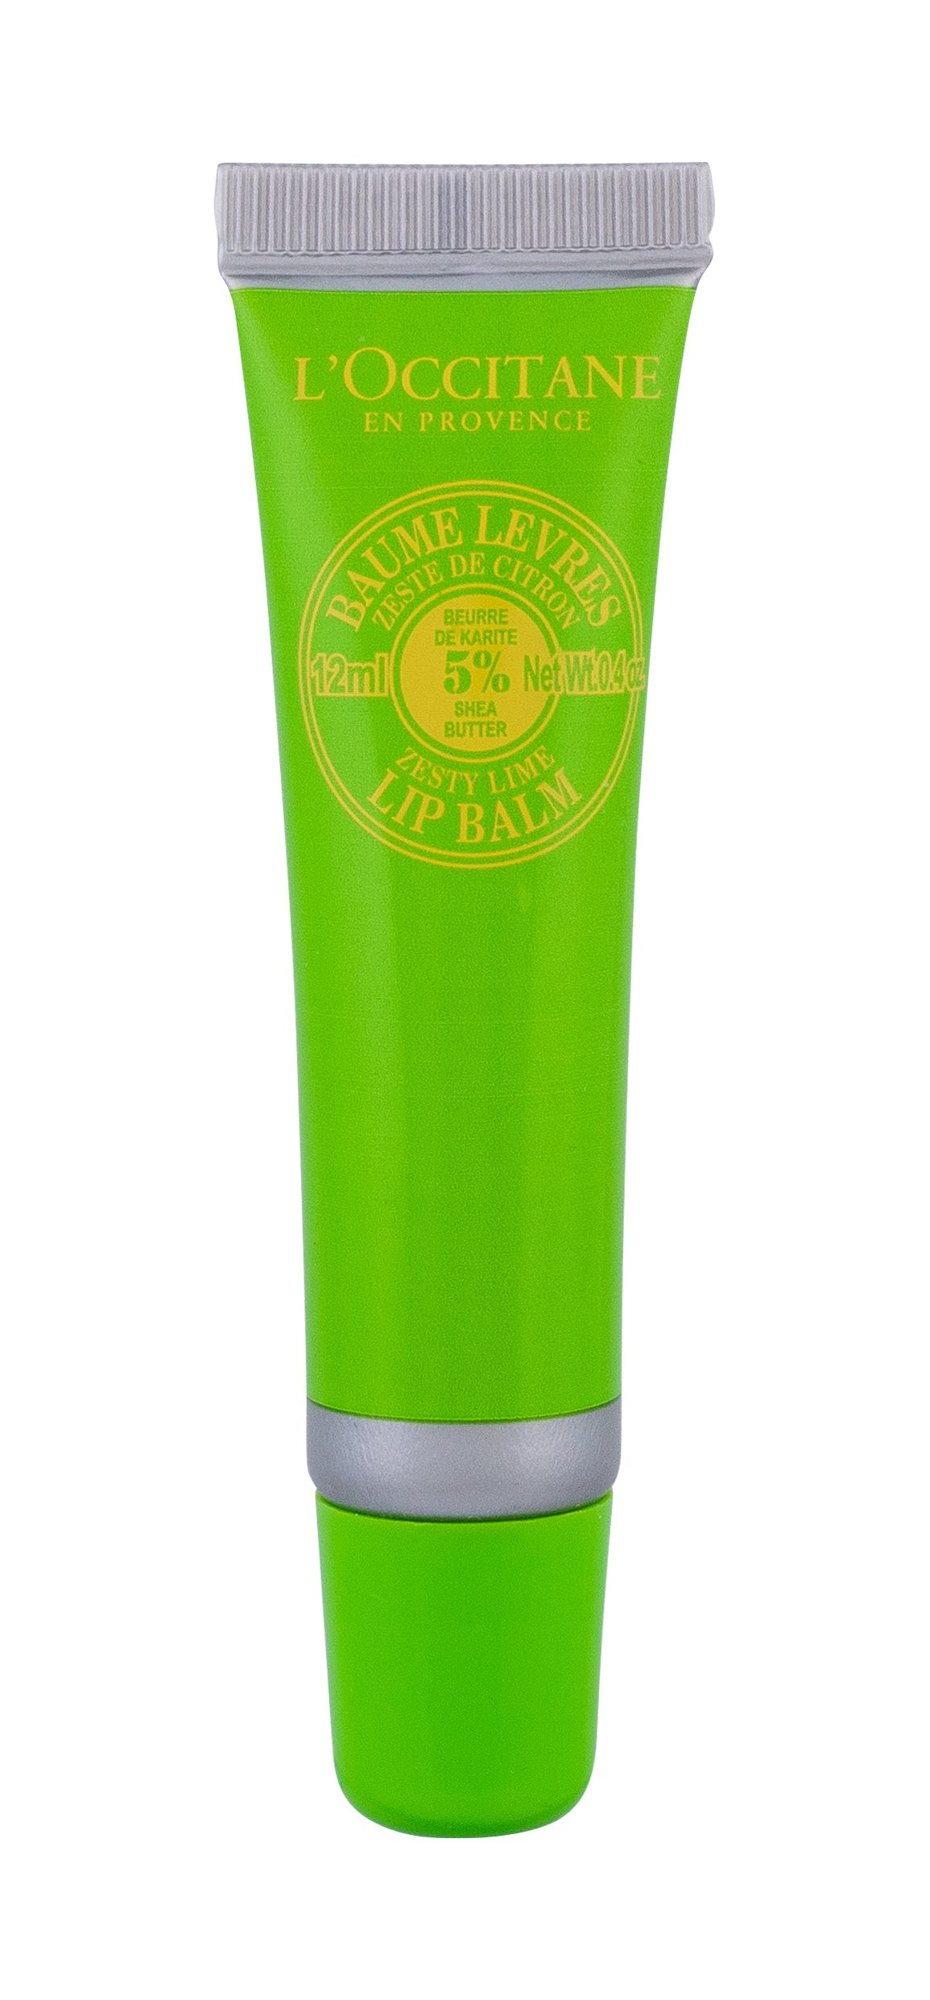 L´Occitane Shea Butter Lip Balm 12ml